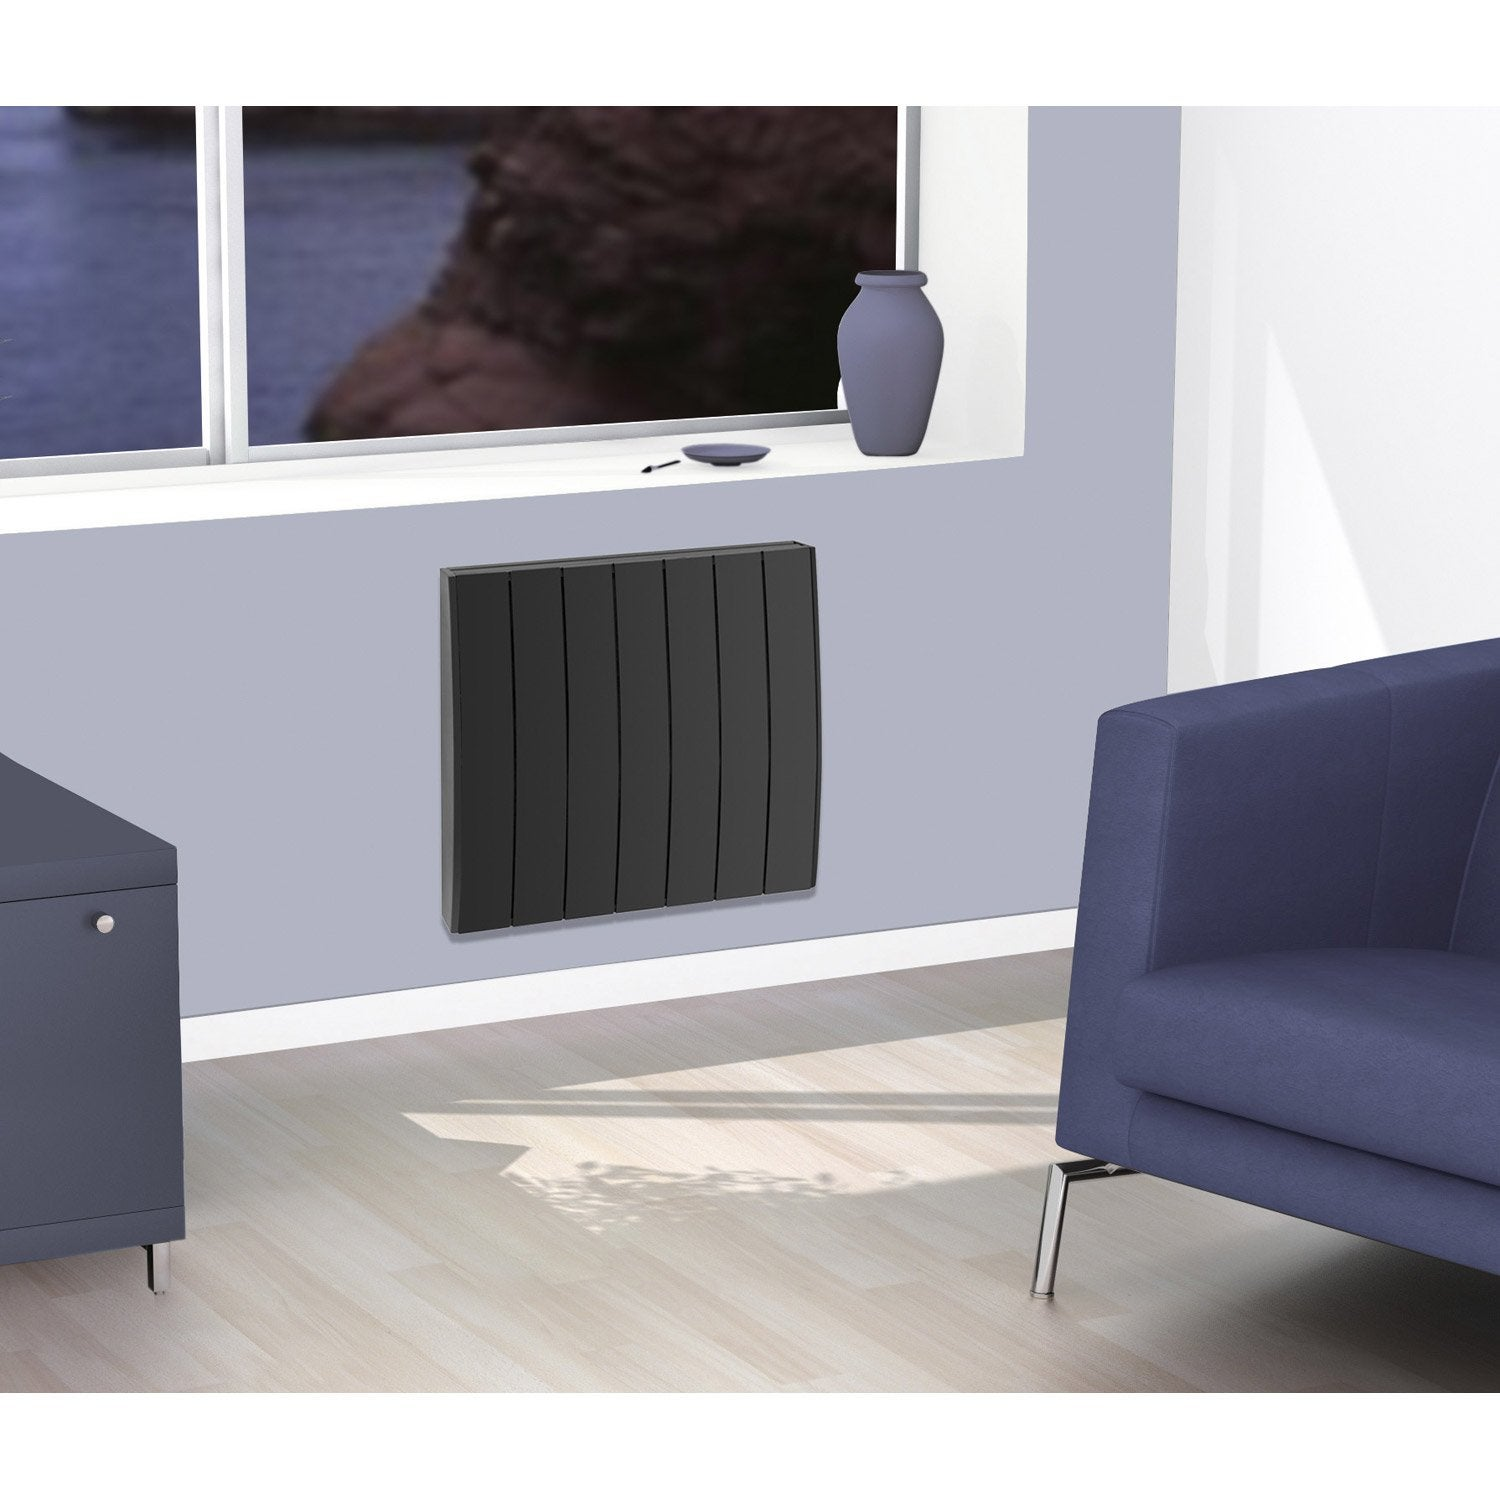 perfect etagere sur radiateur with etagere radiateur. Black Bedroom Furniture Sets. Home Design Ideas